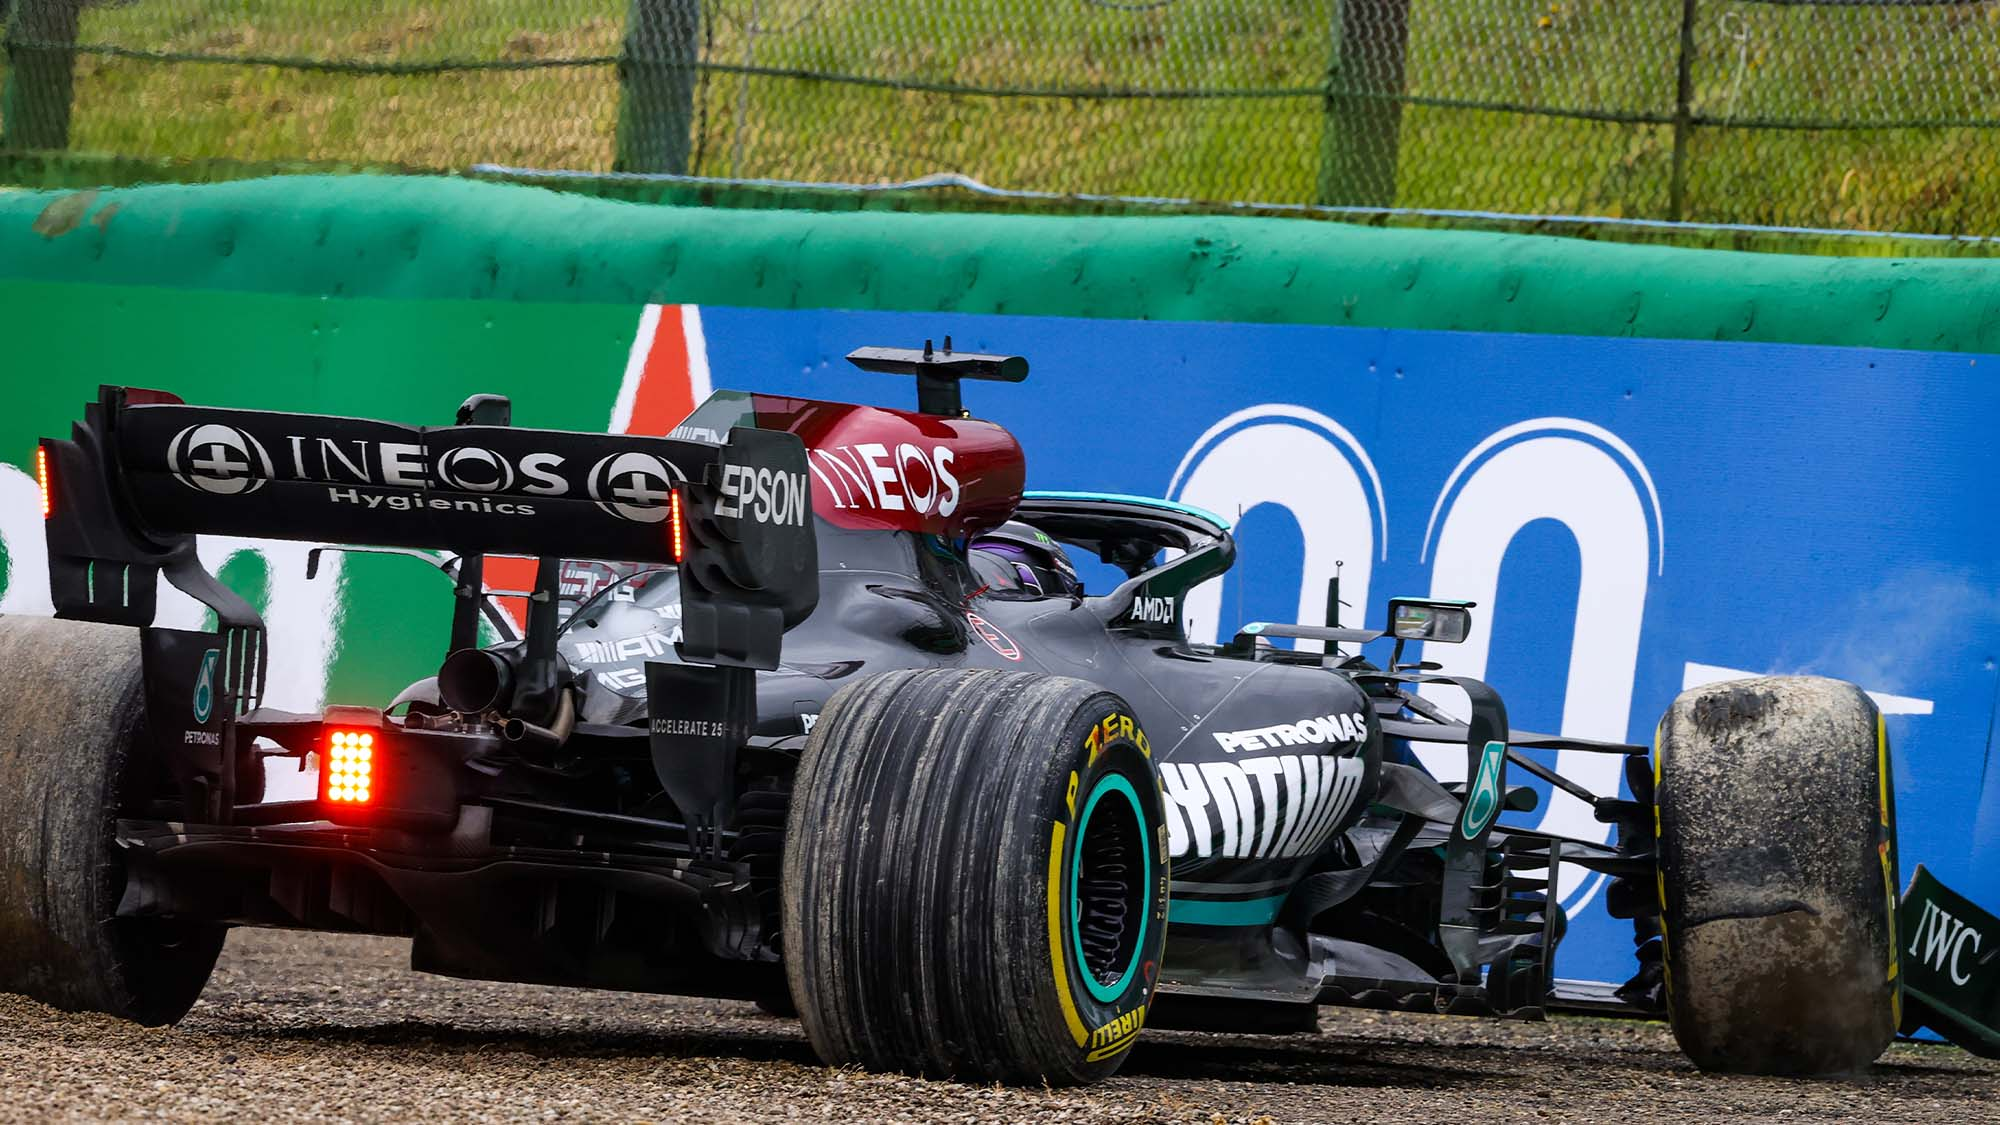 Lewis Hamilton crashes at the 2021 Emilia Romagna Grand Prix